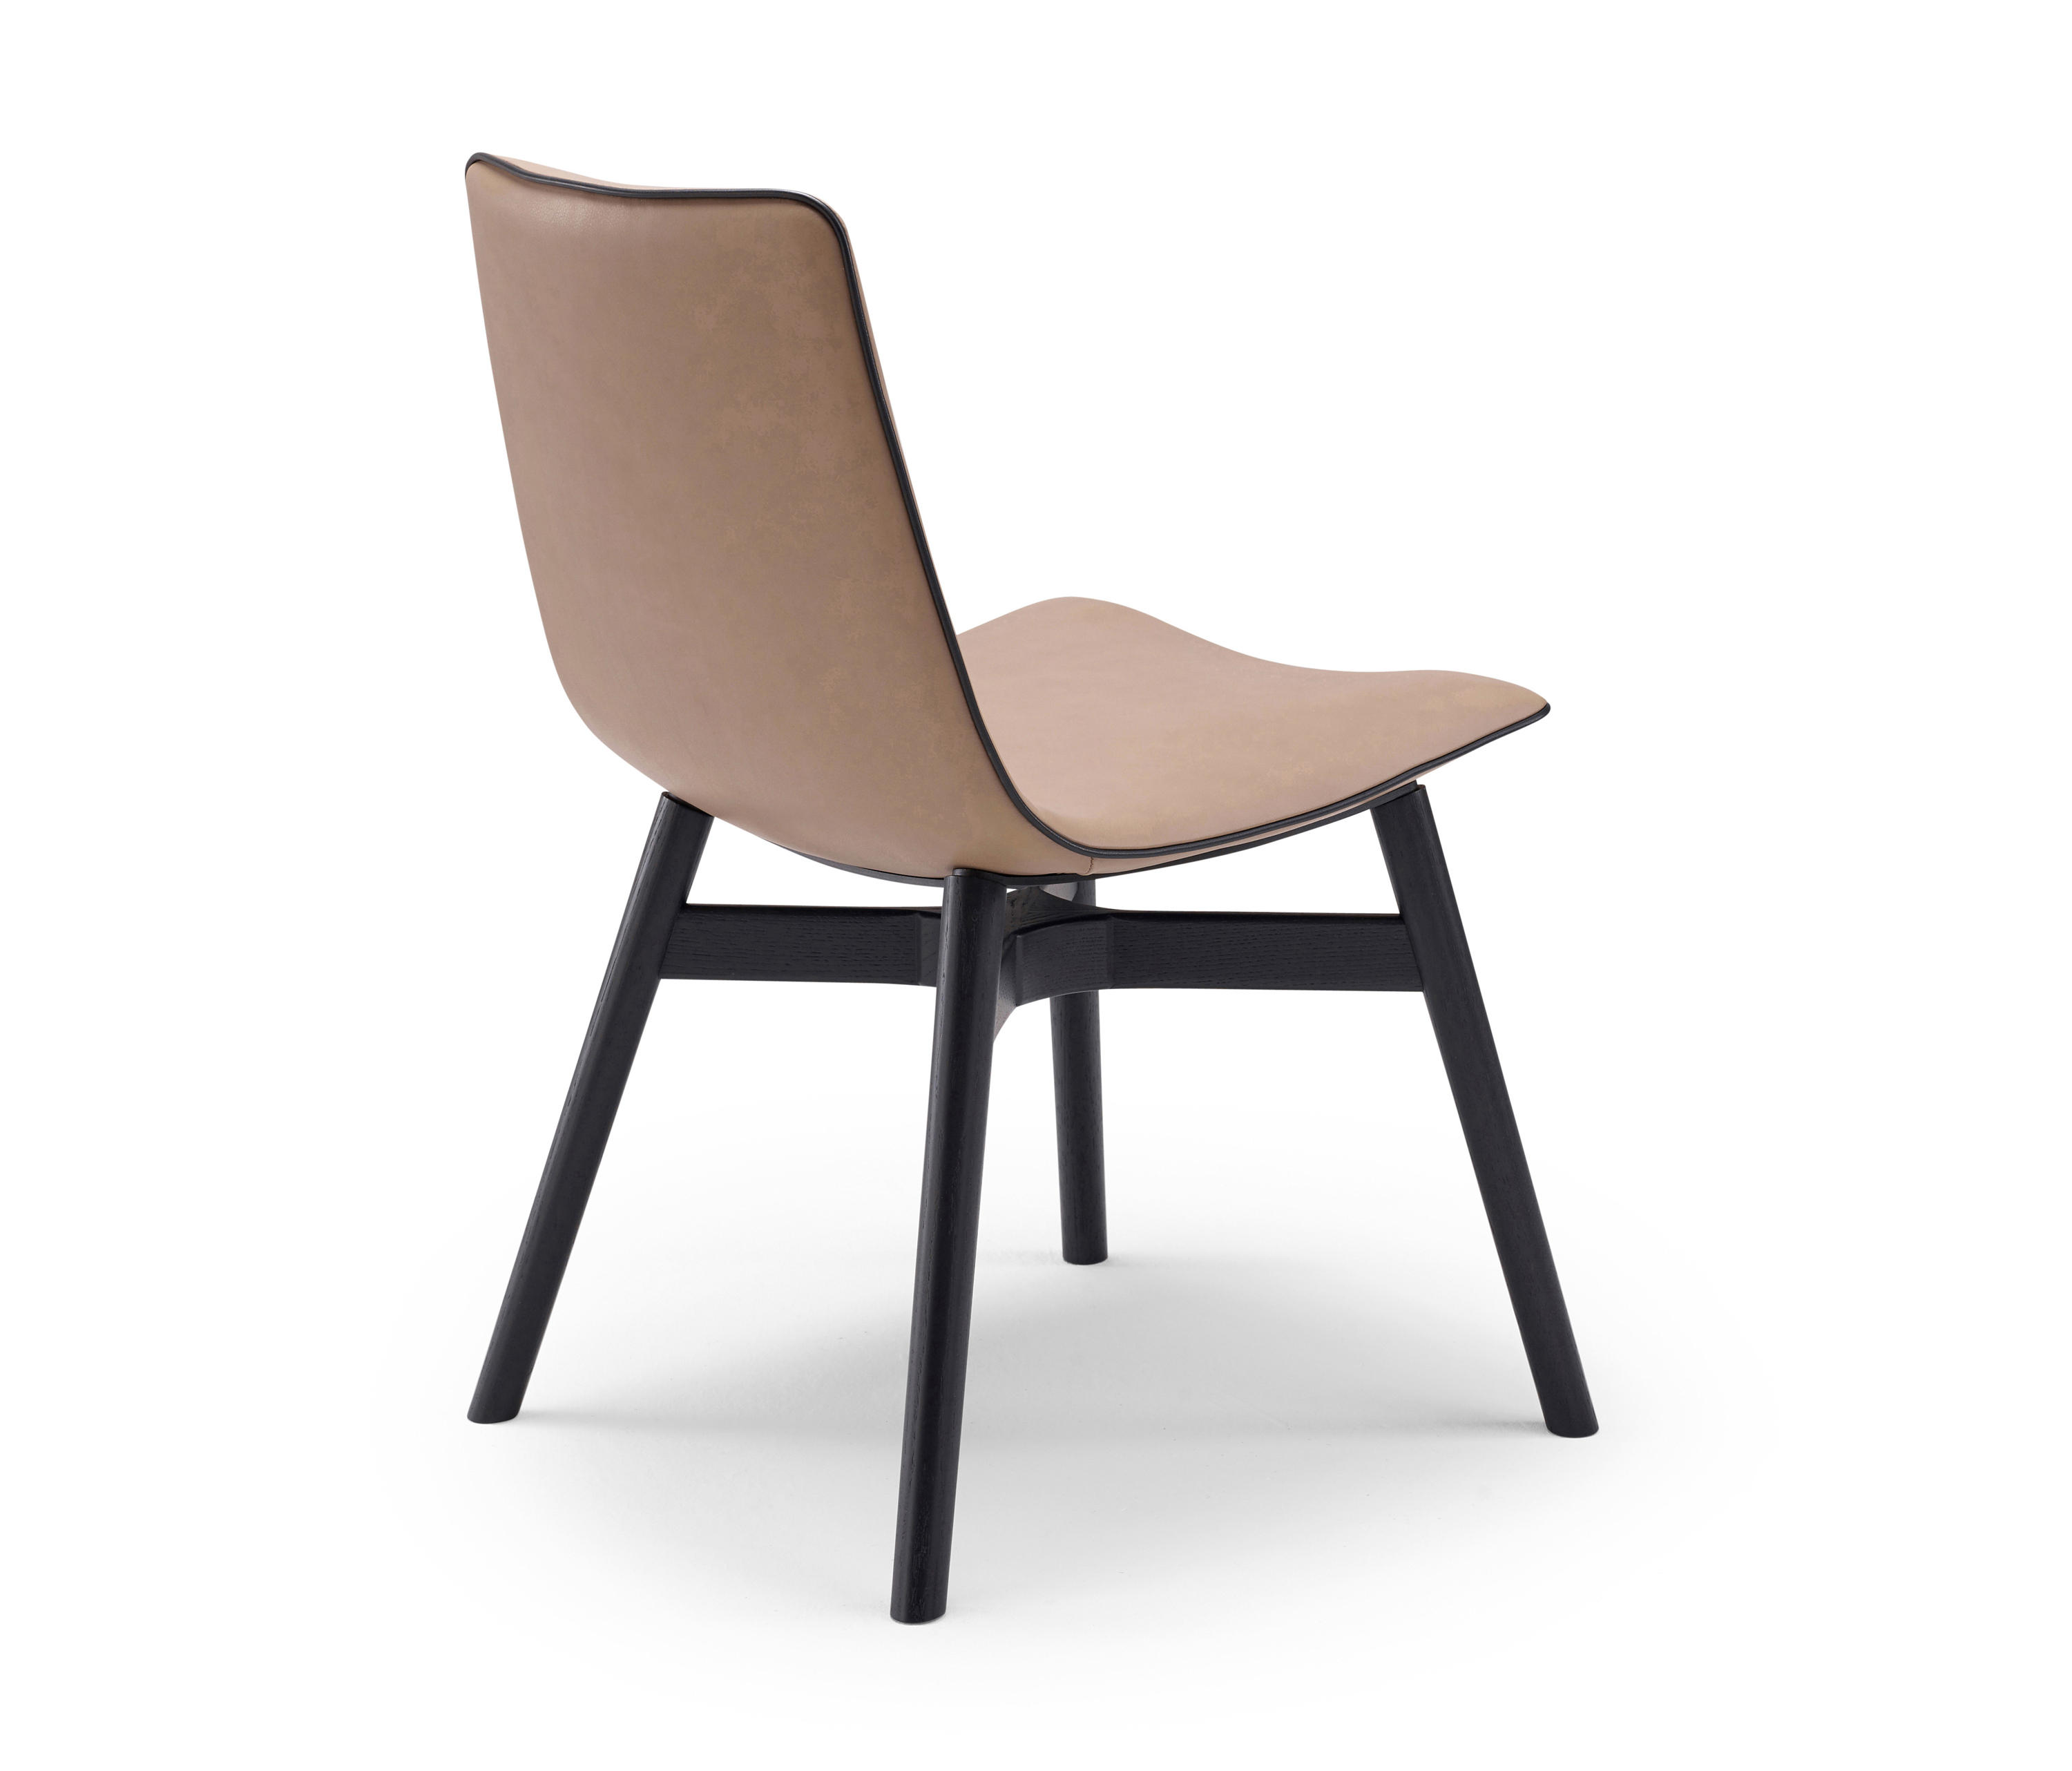 AMELIE | BASIC WITH WOODEN FRAME WITH CROSS - Chairs from Freifrau ...